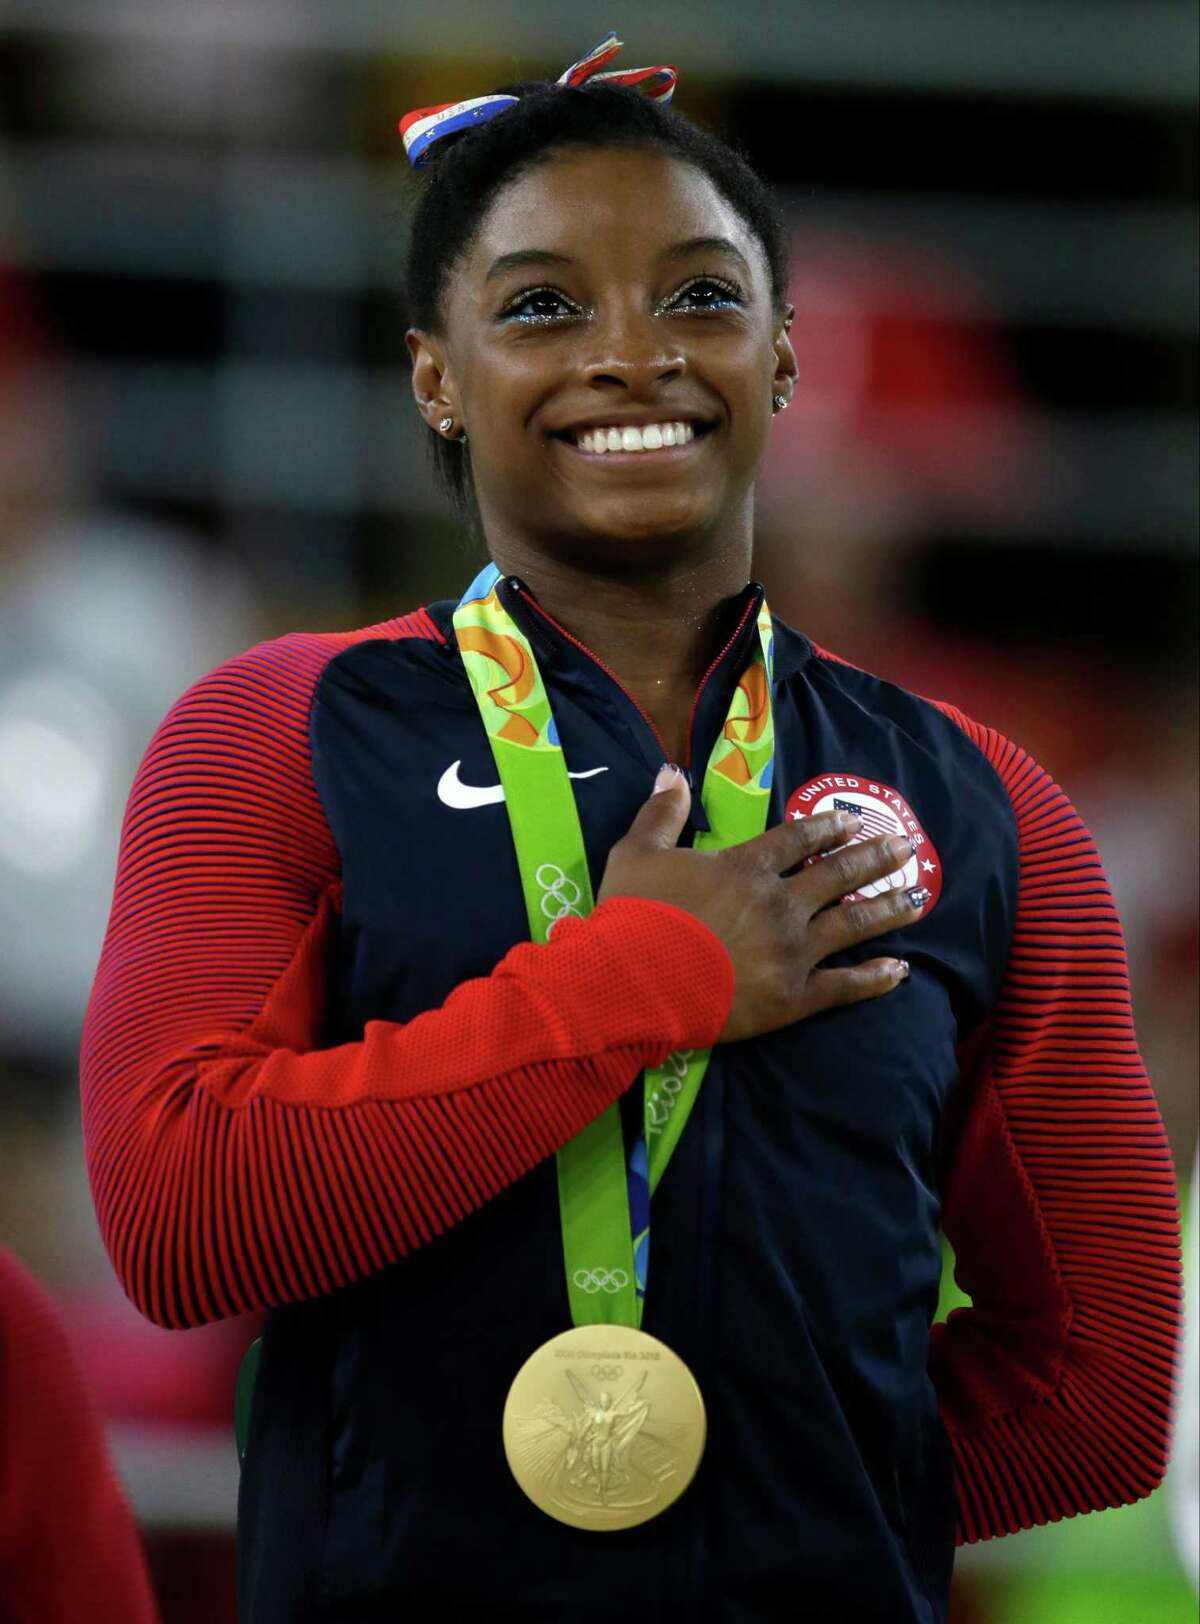 FILE - In this Aug. 16, 2016, file photo, United States' Simone Biles stands during the national anthem after winning the gold medal in the women's floor exercise at the 2016 Summer Olympics in Rio de Janeiro, Brazil. Confidential medical data of gold medal-winning gymnast Simone Biles, seven-time Grand Slam champion Venus Williams and other female U.S. Olympians was hacked from a World Anti-Doping Agency database and posted online Tuesday, Sept. 13, 2016. WADA said the hackers were a